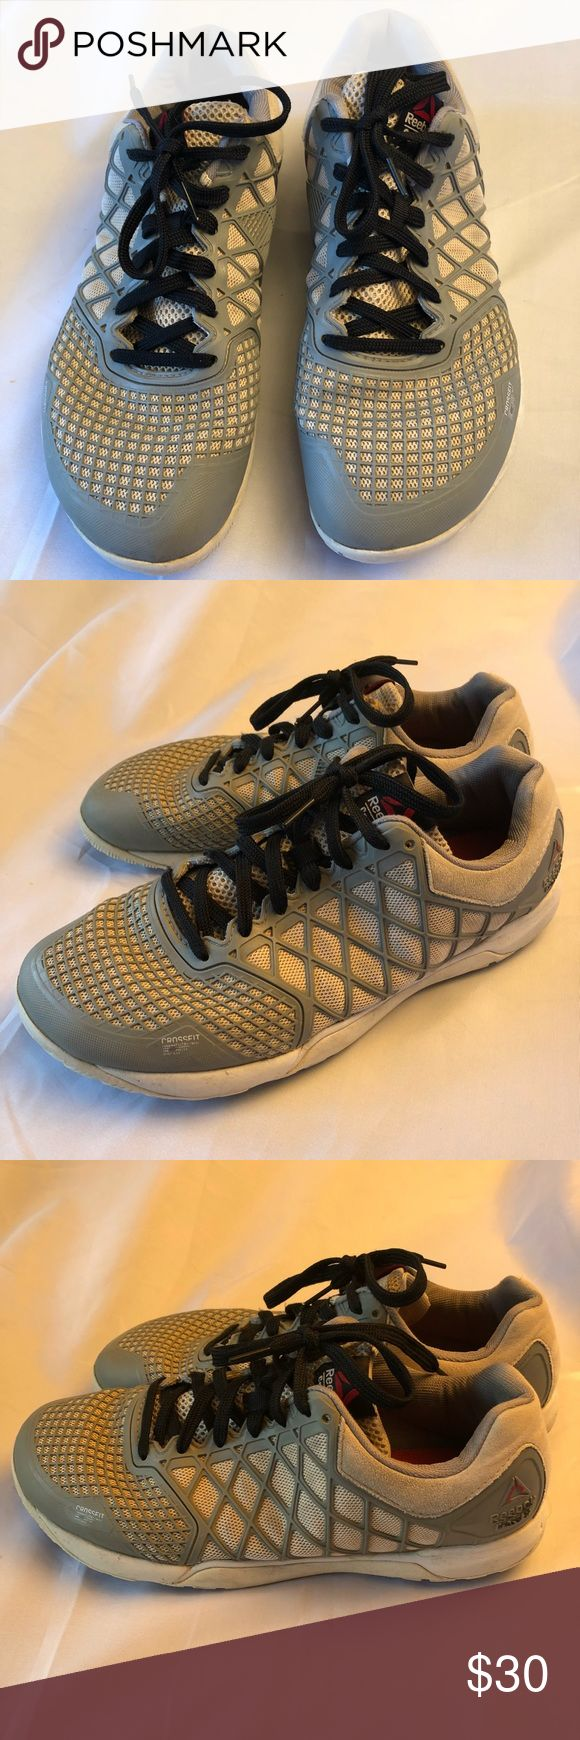 Men's REEBOK CrossFit 10.5 men's REEBOK CrossFit  10.5 in used confusion. Some slight wear around edge near the tongue on right shoe. Price reflects condition. Reebok Shoes Athletic Shoes